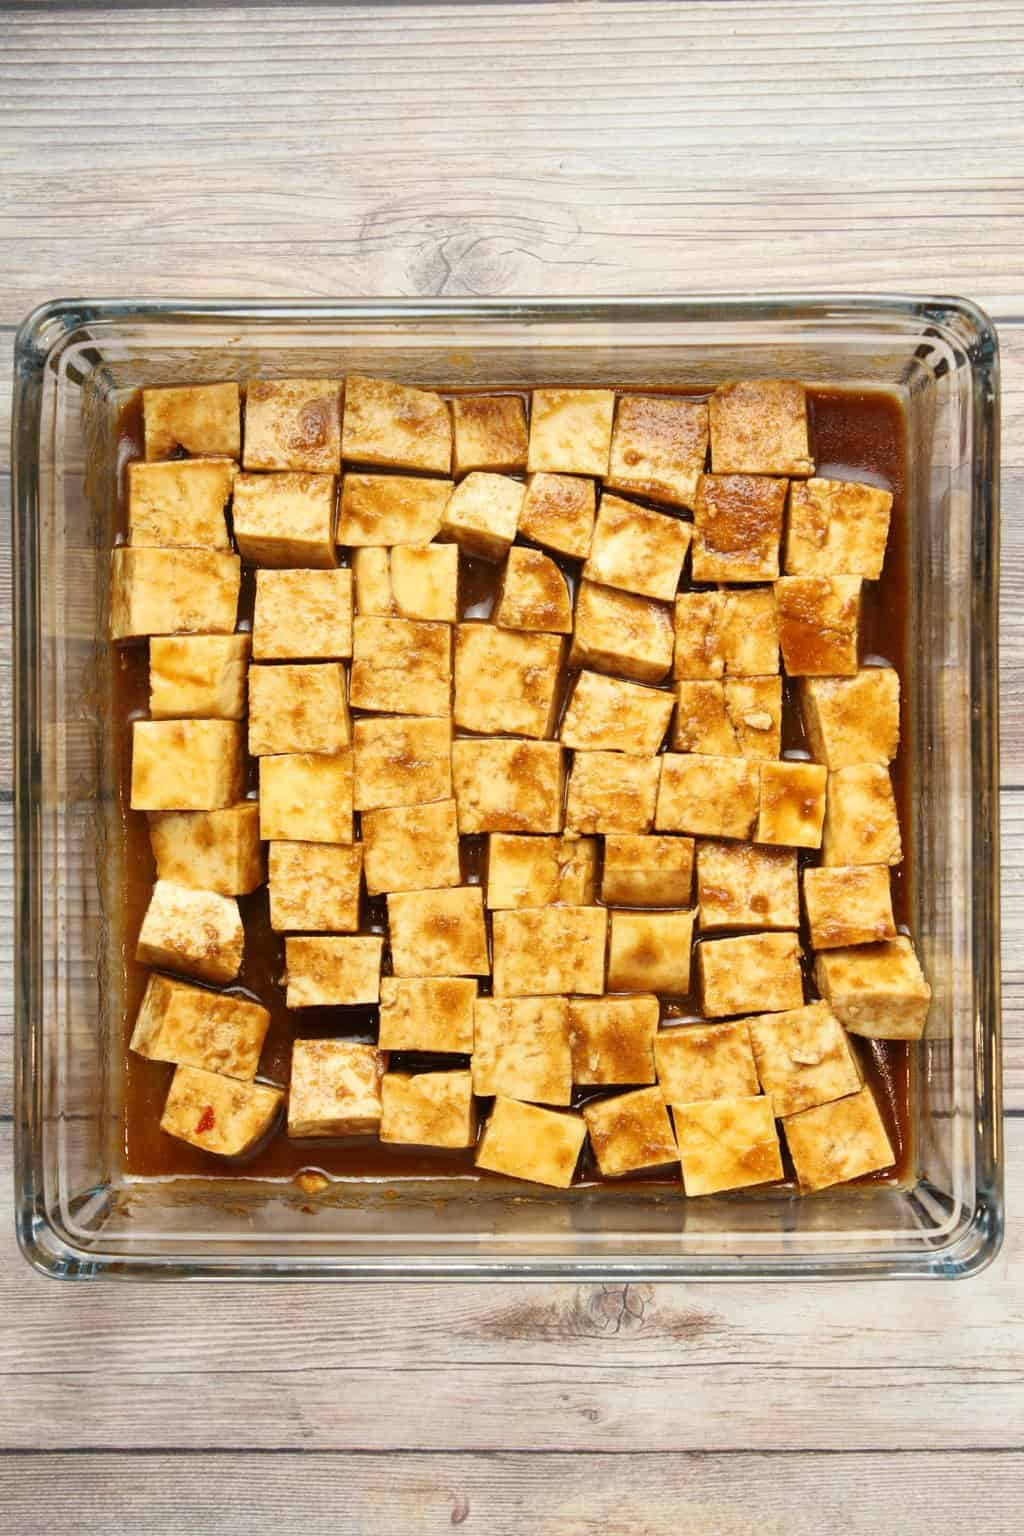 Cubes of tofu marinading in a tofu marinade sauce in a glass dish.